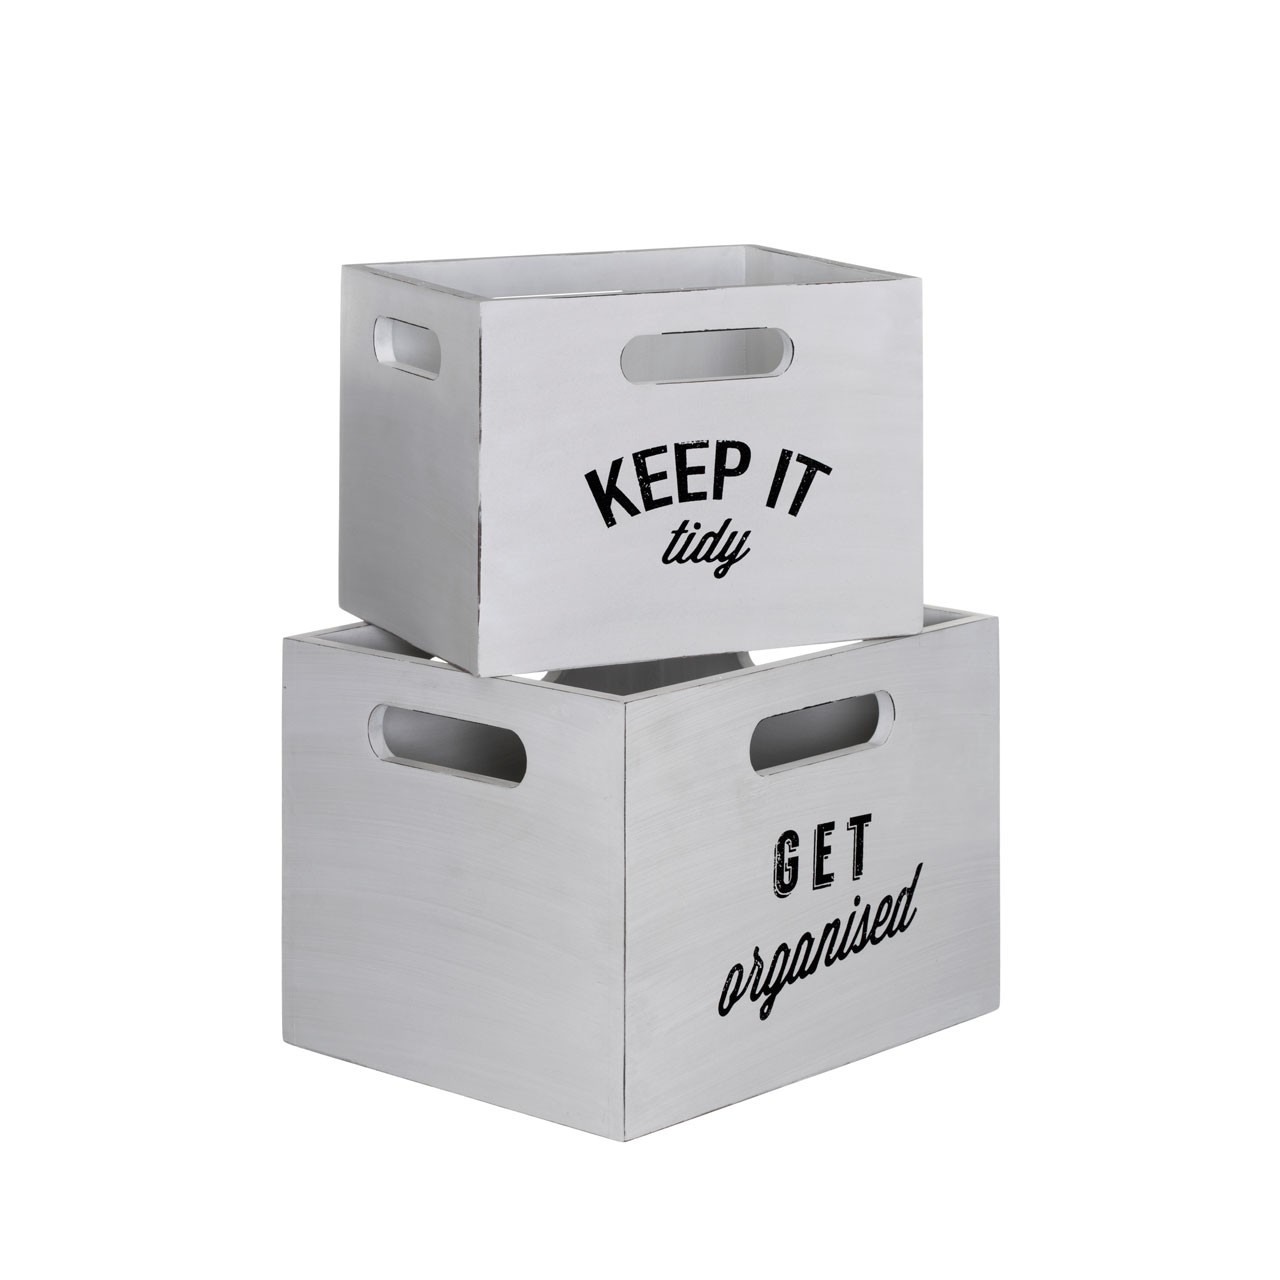 Prime Furnishing Tribeca Storage Crates, White MDF, Set of 2